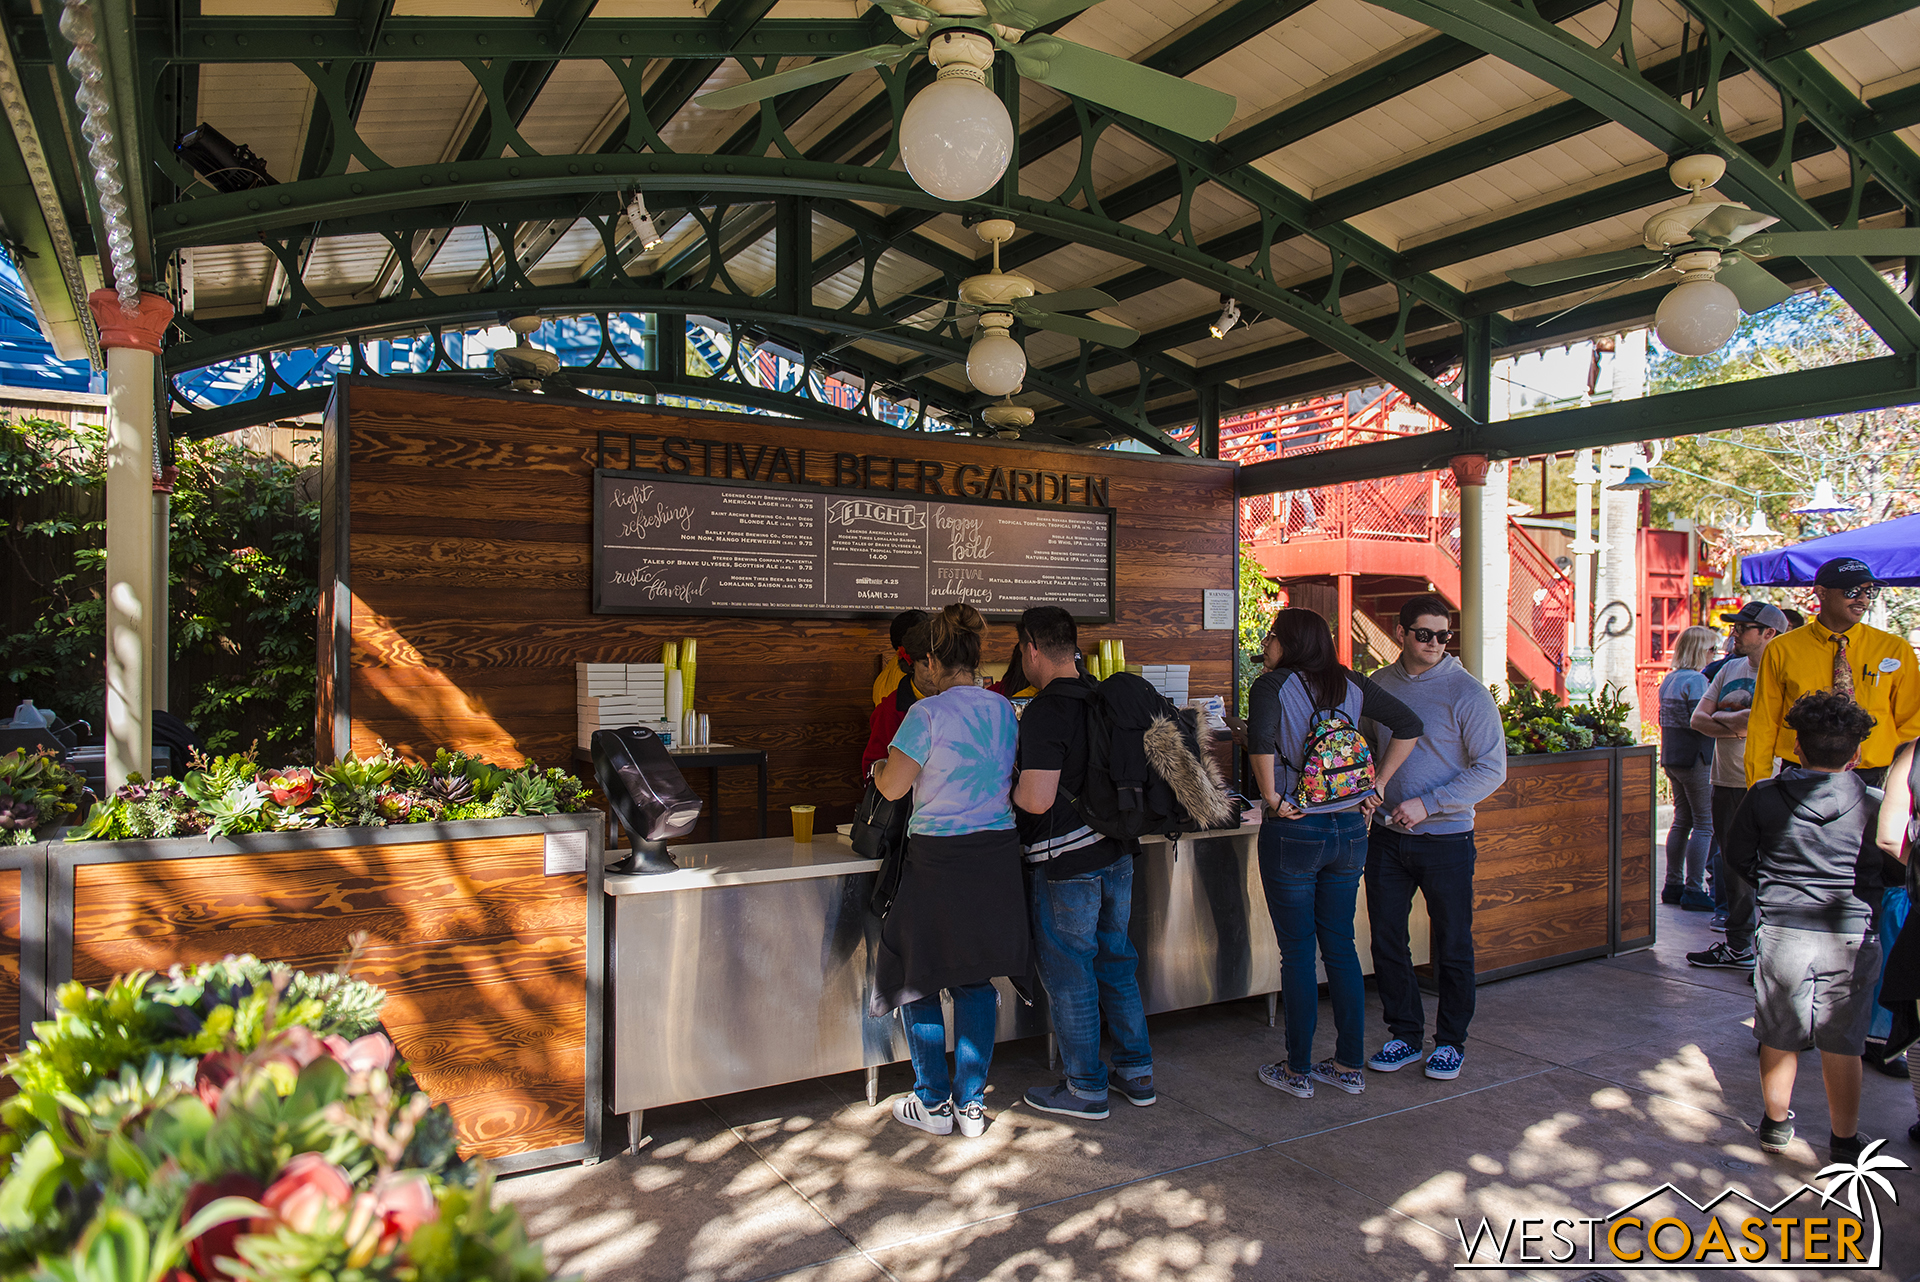 The Festival Beer Garden is back at DCA.